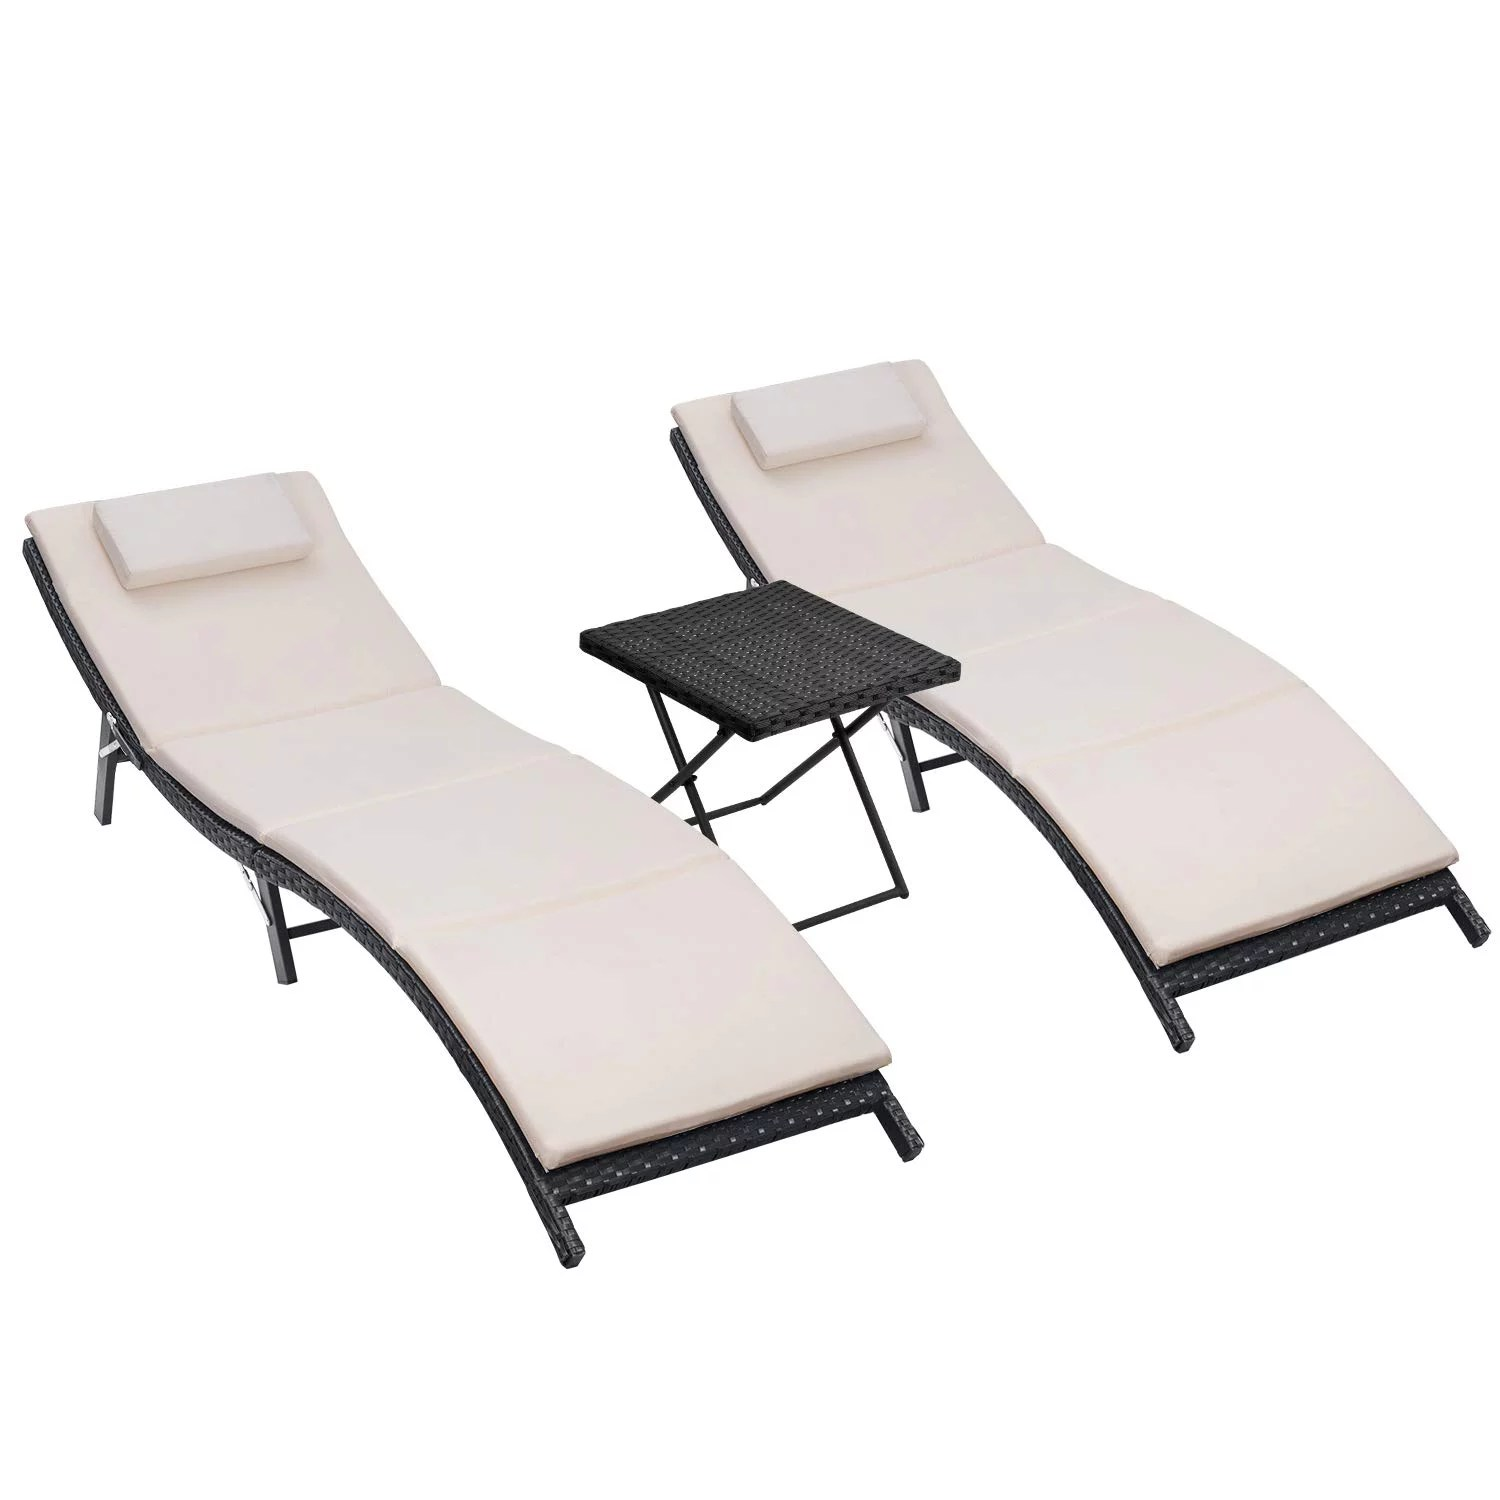 walnew 3 pcs patio furniture outdoor lounge chairs folding lawn poolside patio chaise lounge sets pe rattan chaise lounges with side table and beige